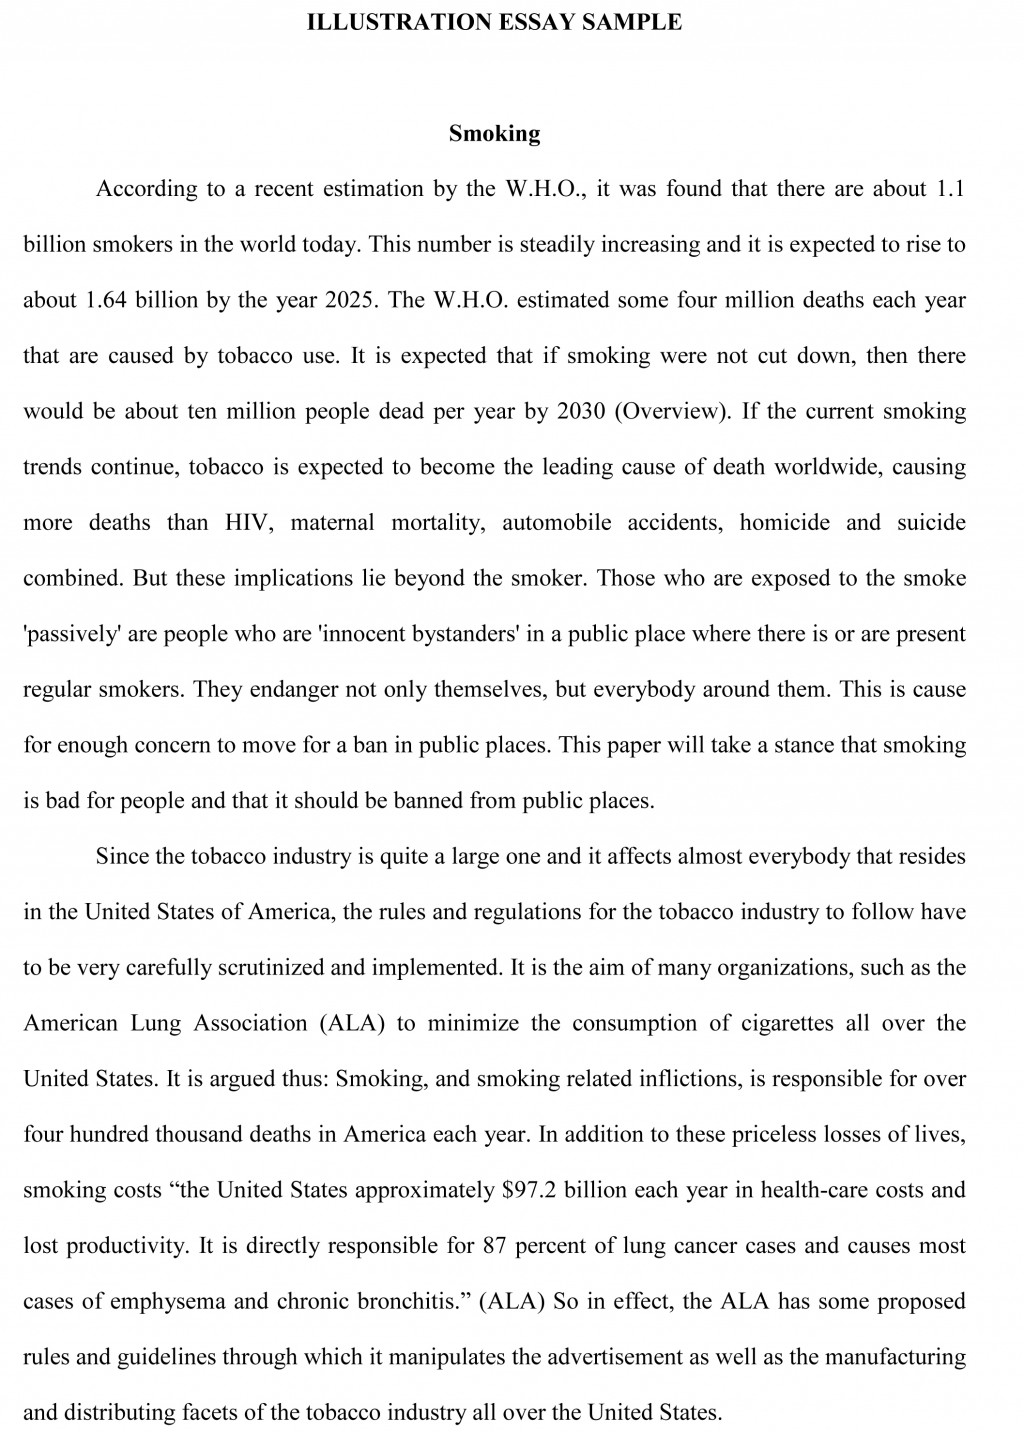 015 Essay Example Formal Illustration Sample Stunning Short Letter Large